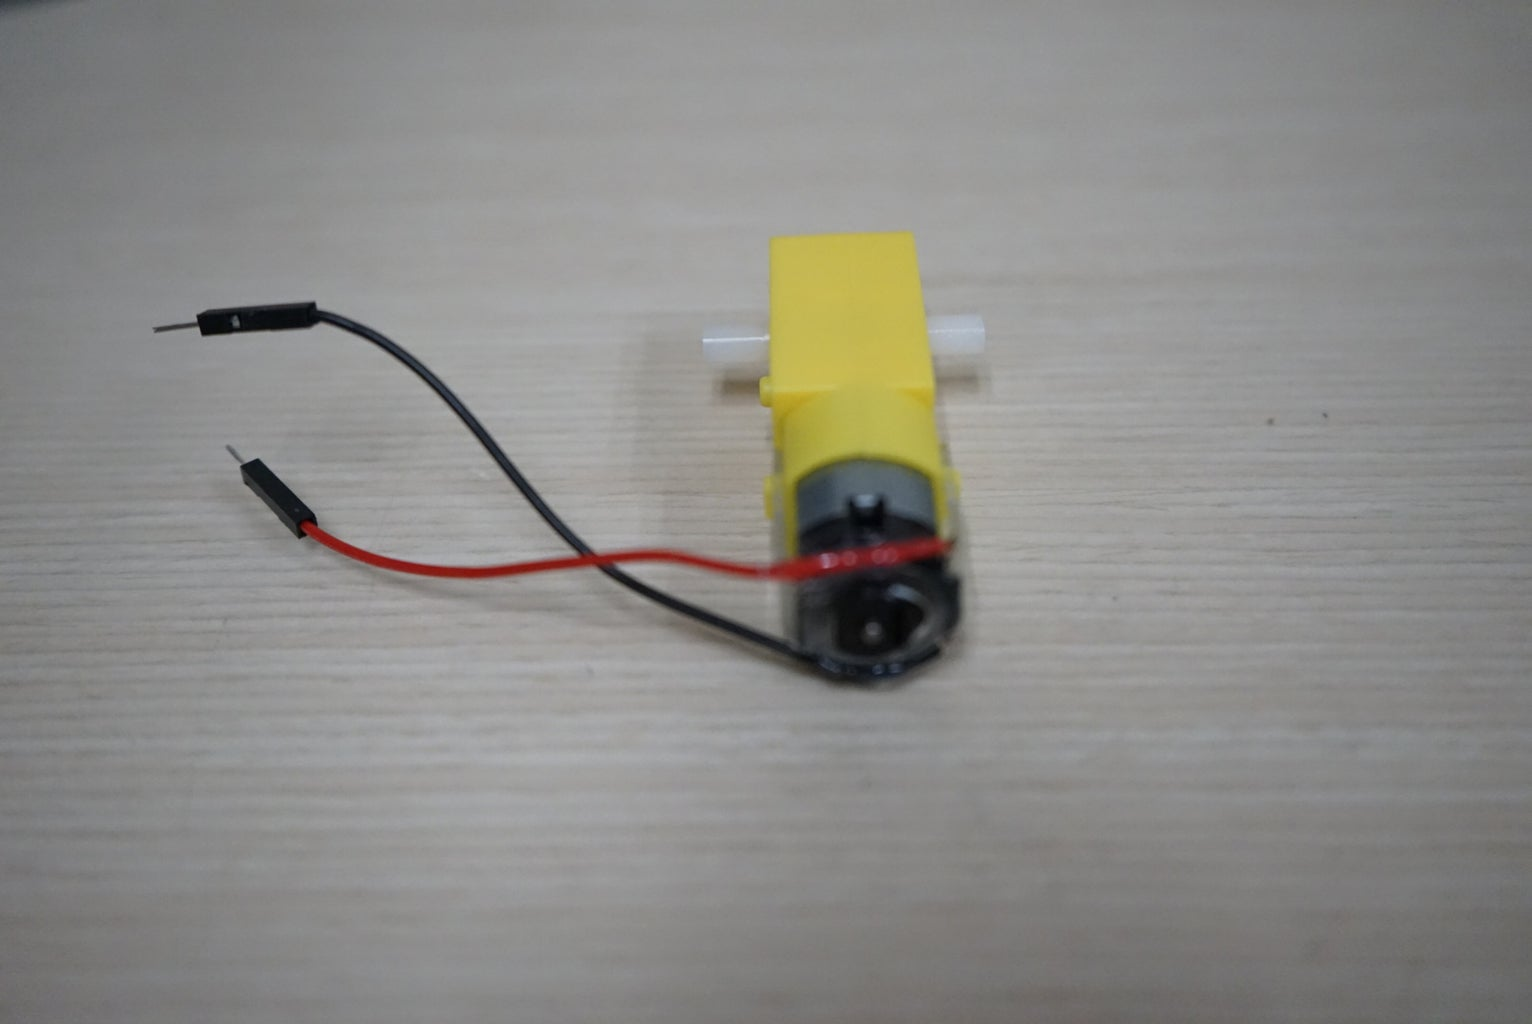 Wiring the Motors Without Solder